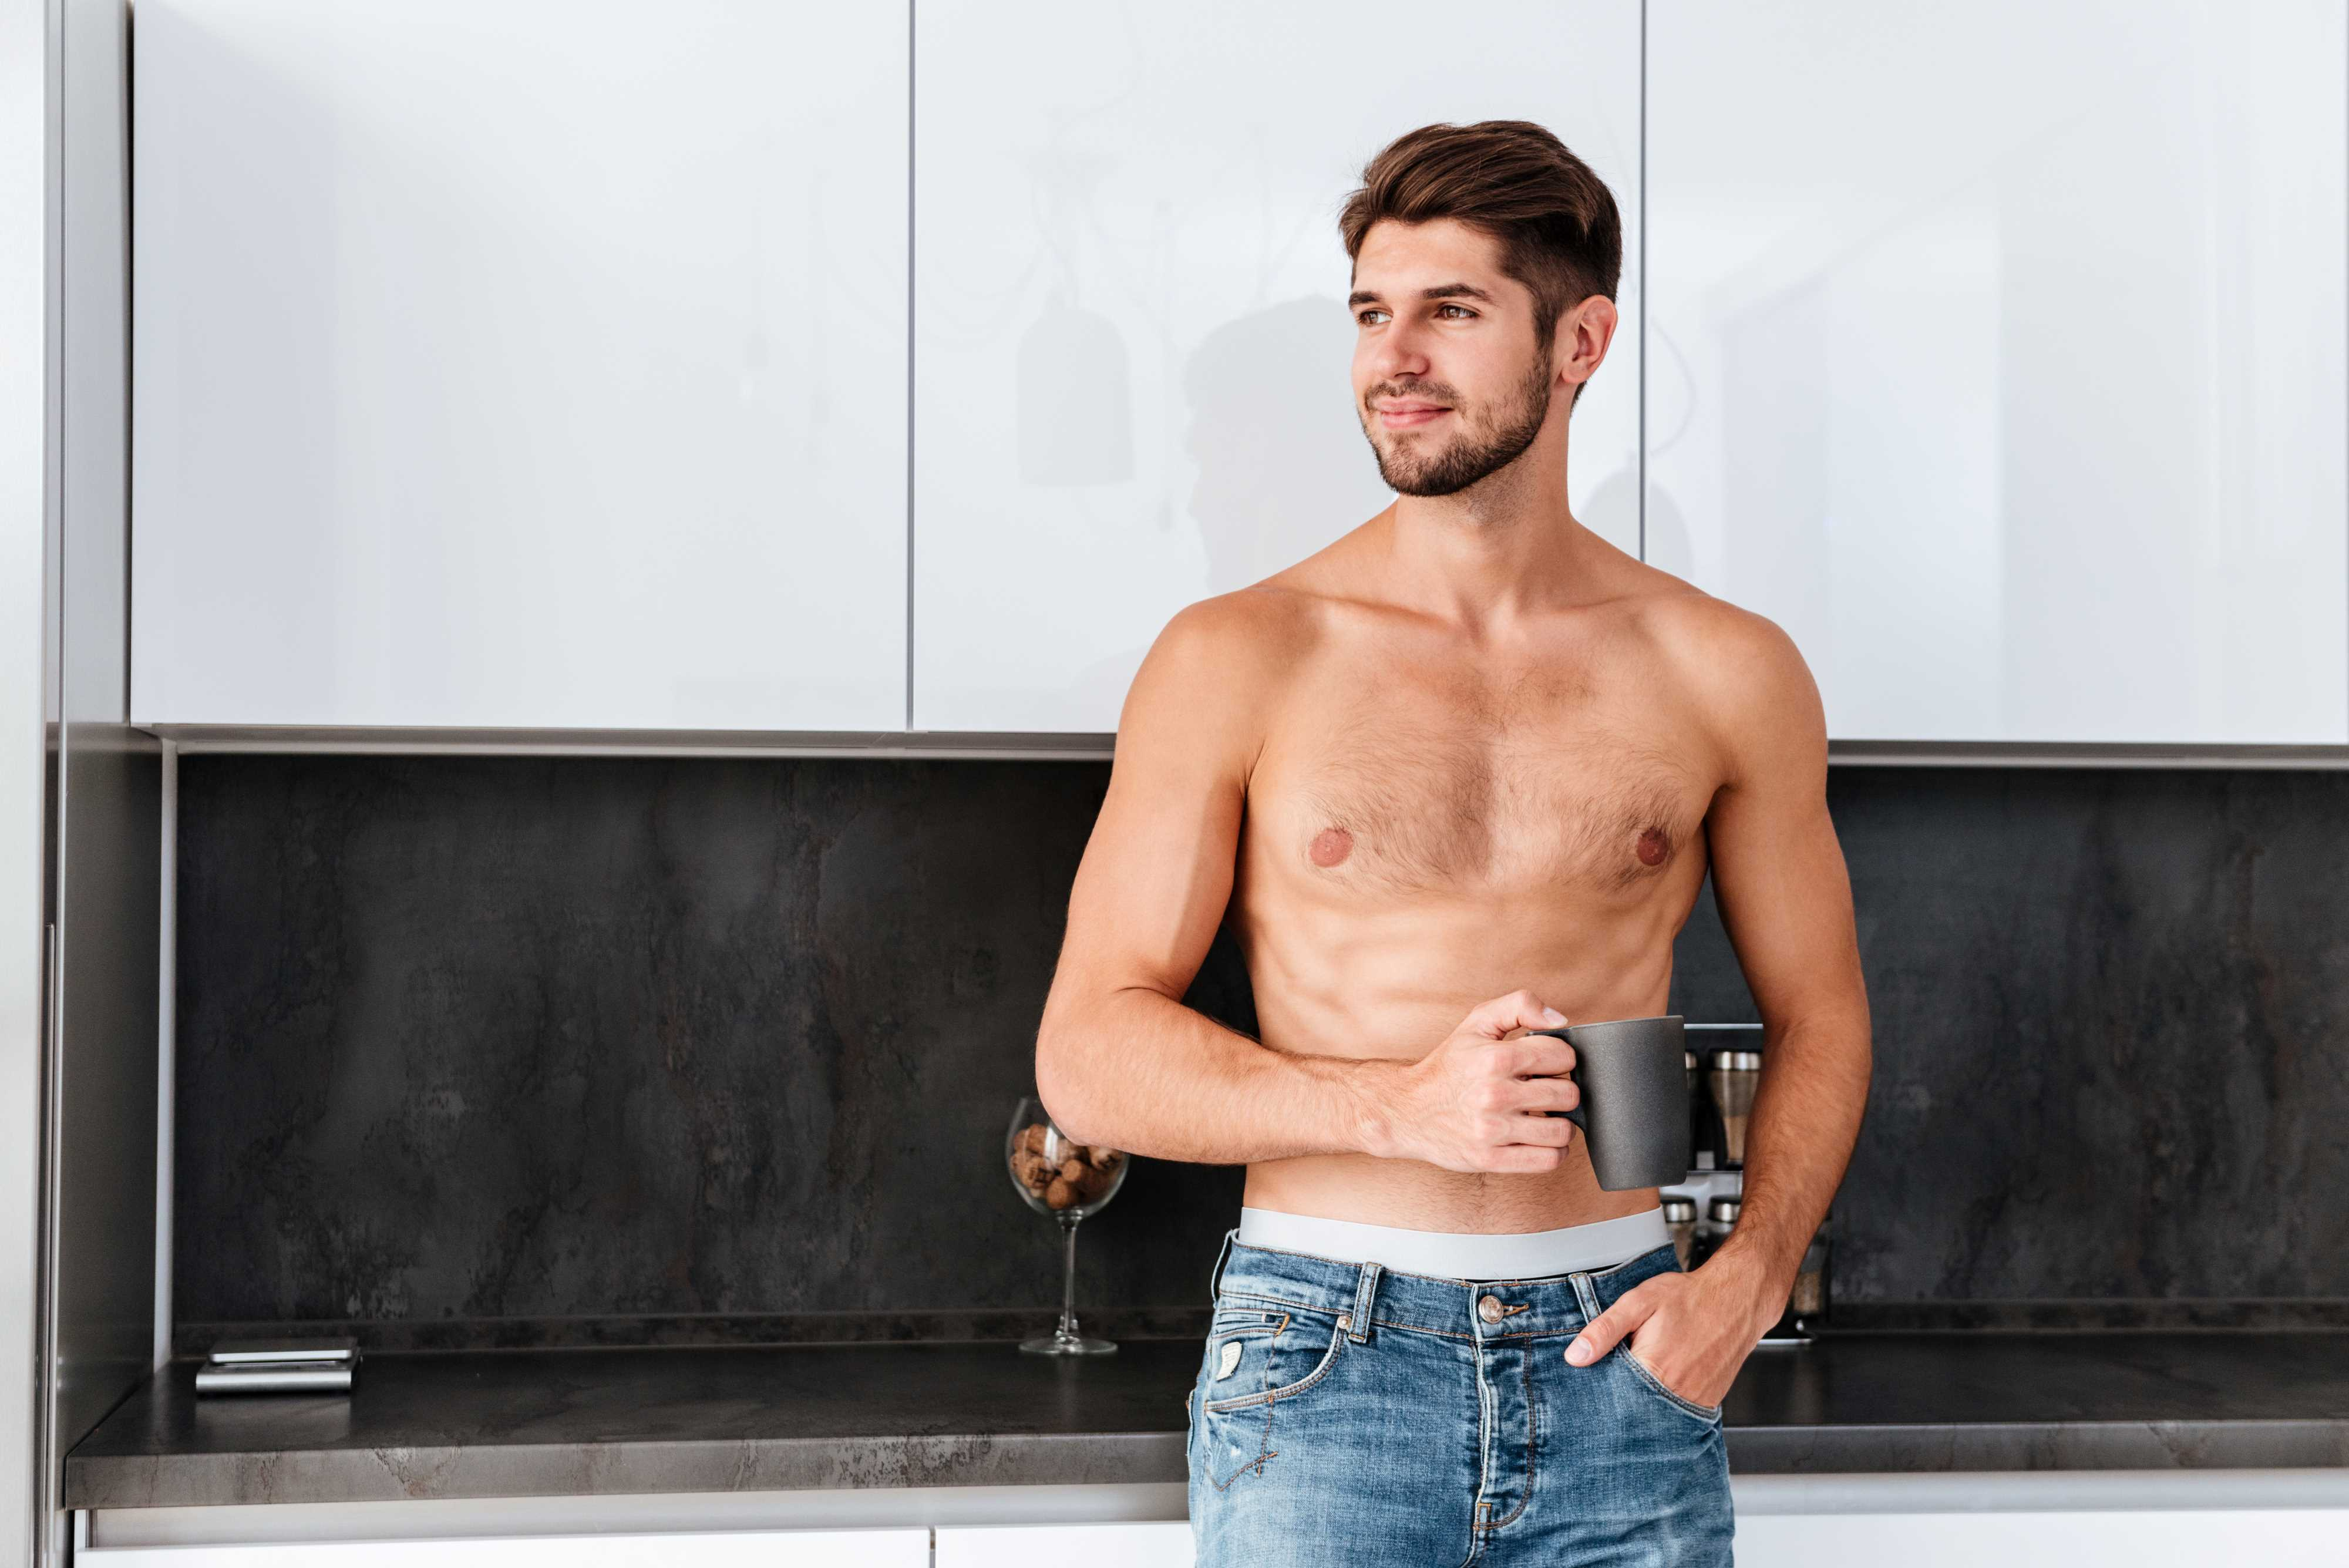 Why COVID-19 Isn't a Bad Thing for Men's Fitness and Health